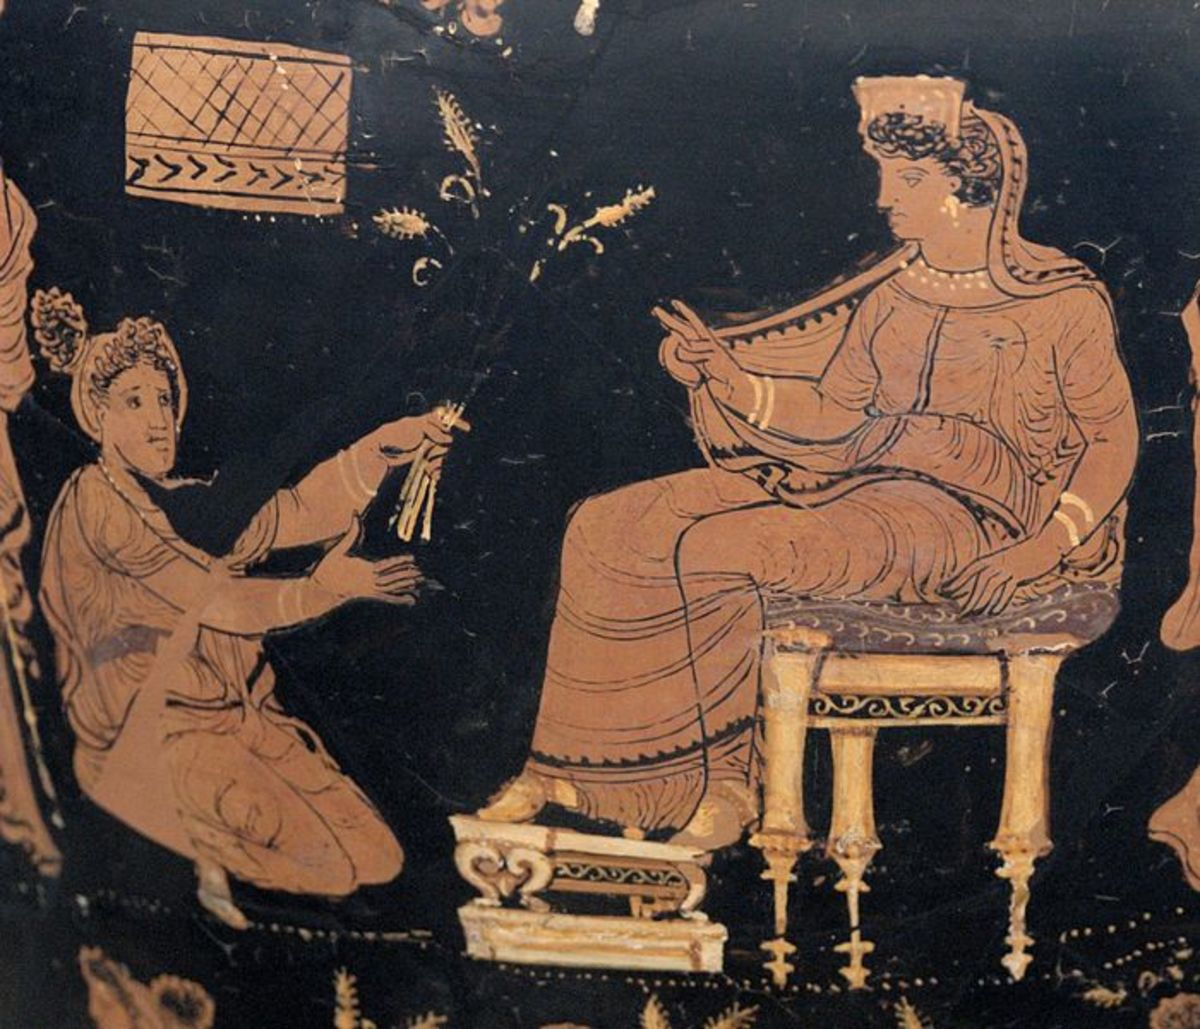 Metaneira worshipping the revealed Demeter who makes a gesture of blessing.